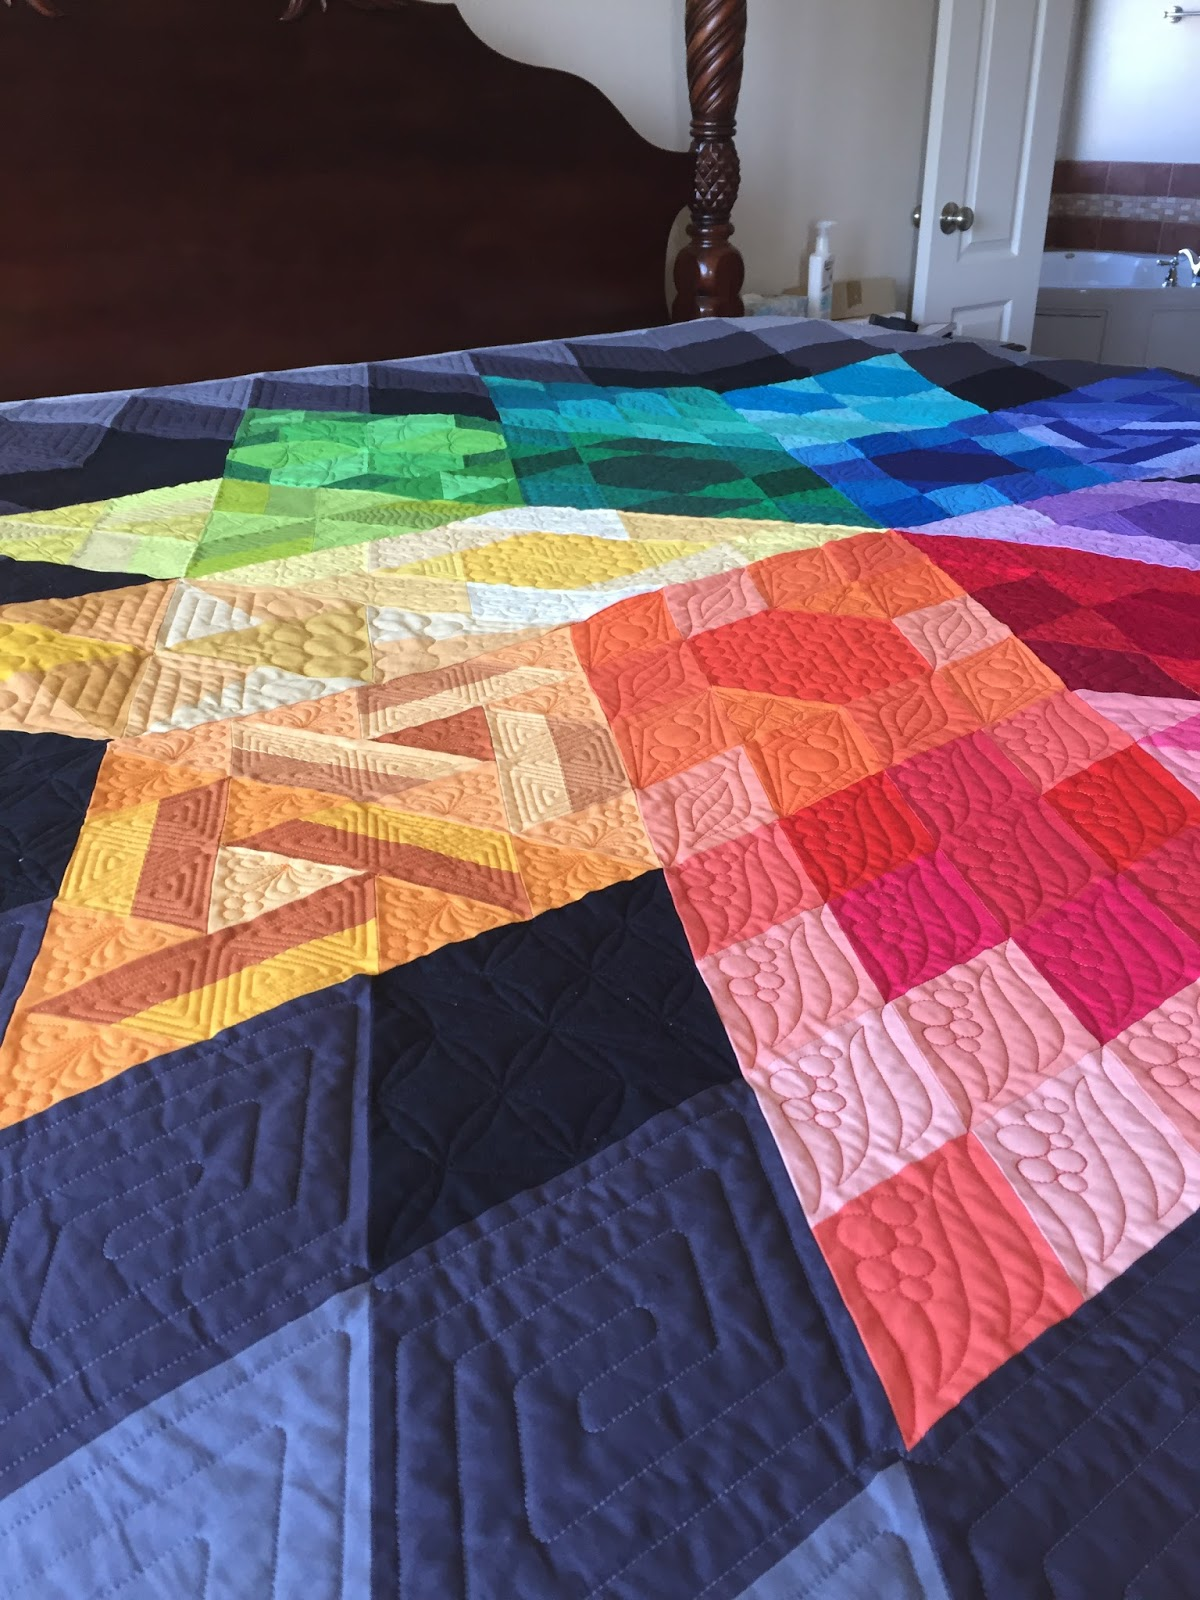 The Tilted Quilt